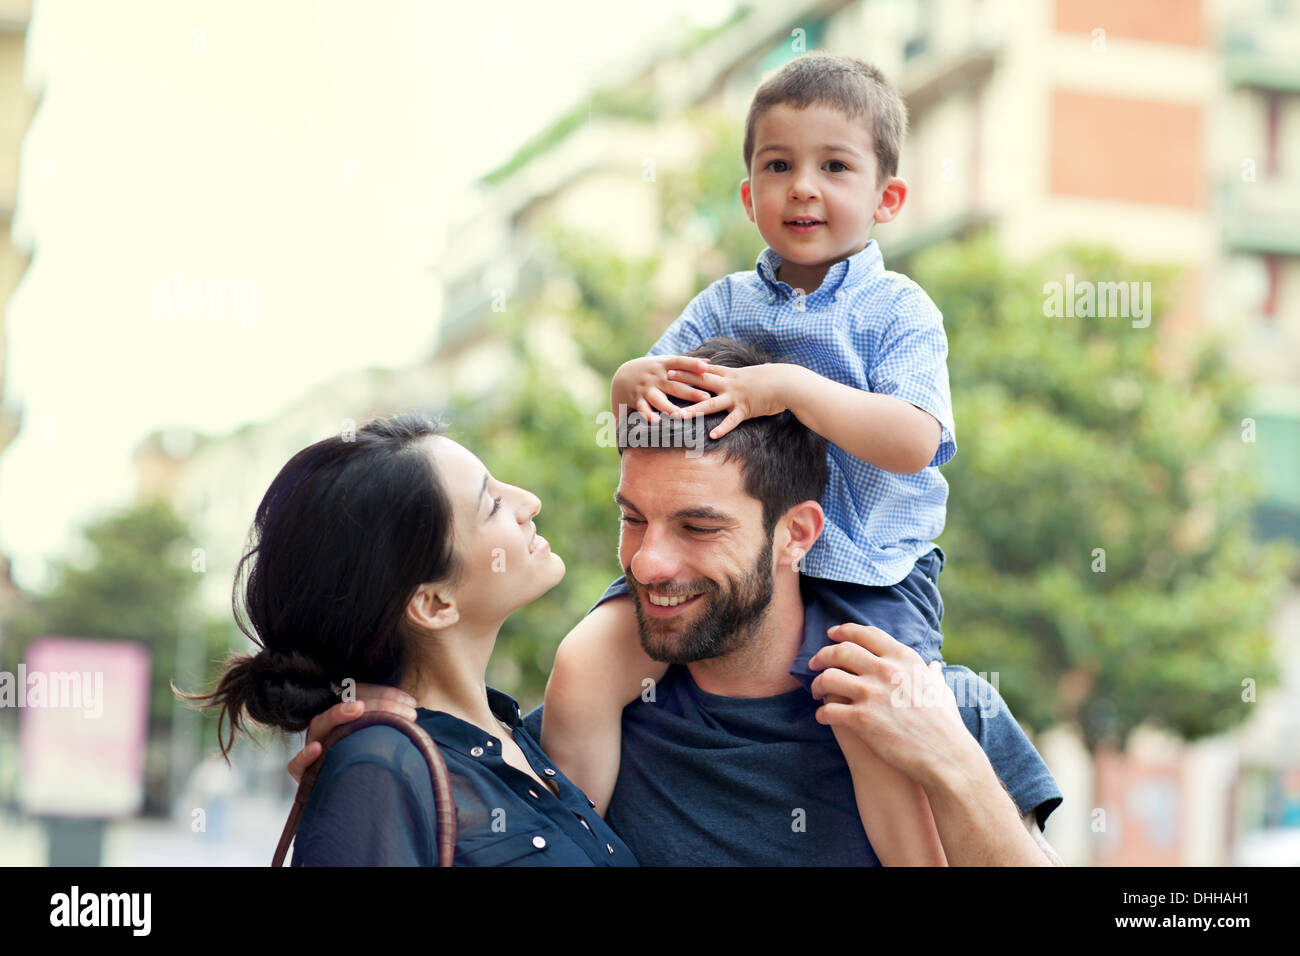 Father carrying son on shoulders with woman - Stock Image